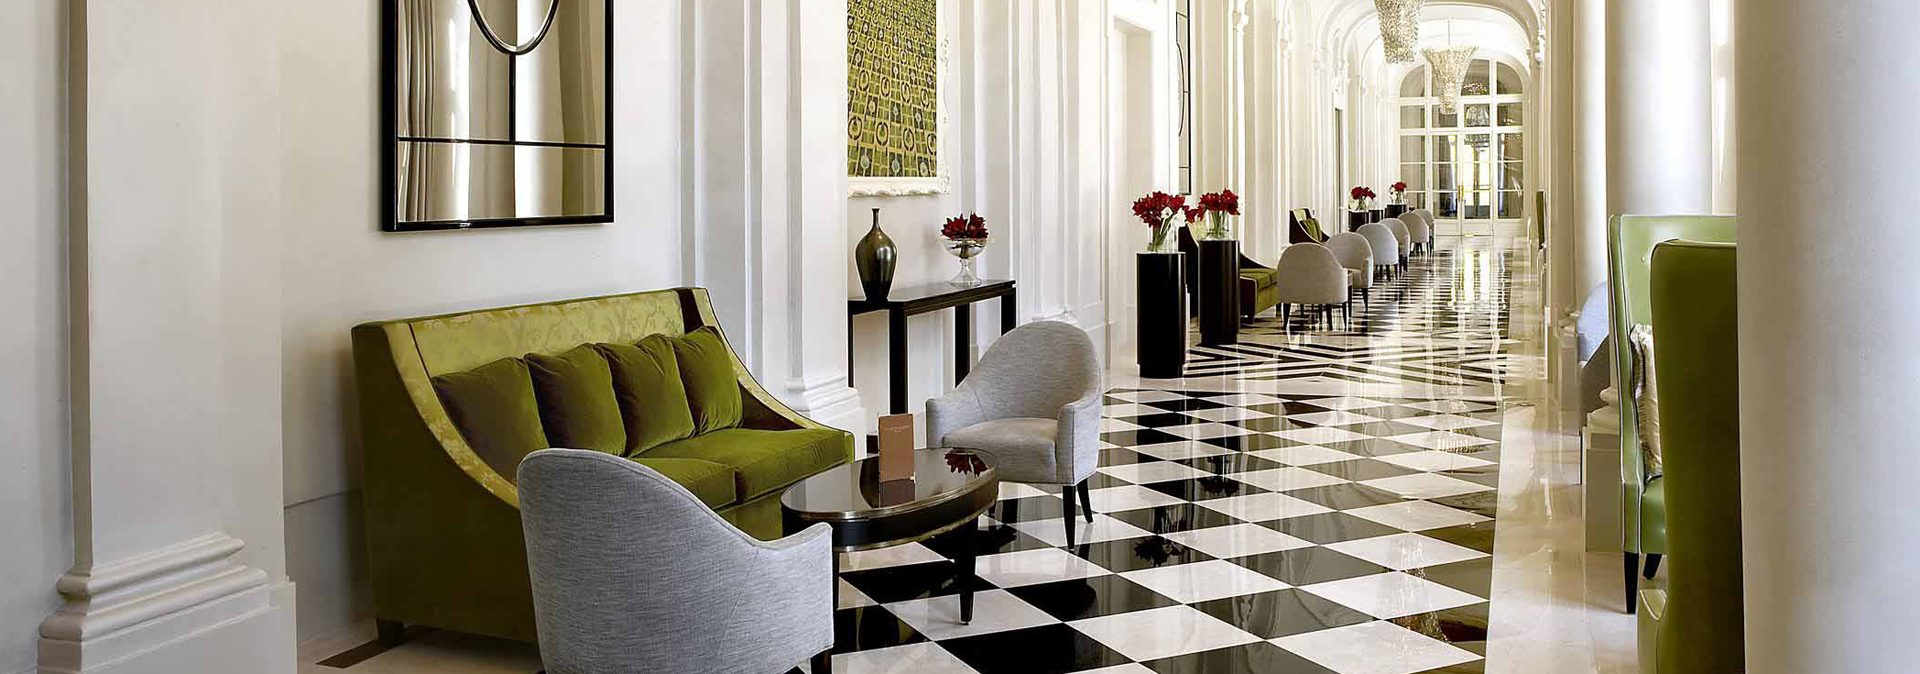 Sweet dreams are made of these: Waldorf Astoria hotels launch two new concierge services to cure your jet lag and ensure a good read